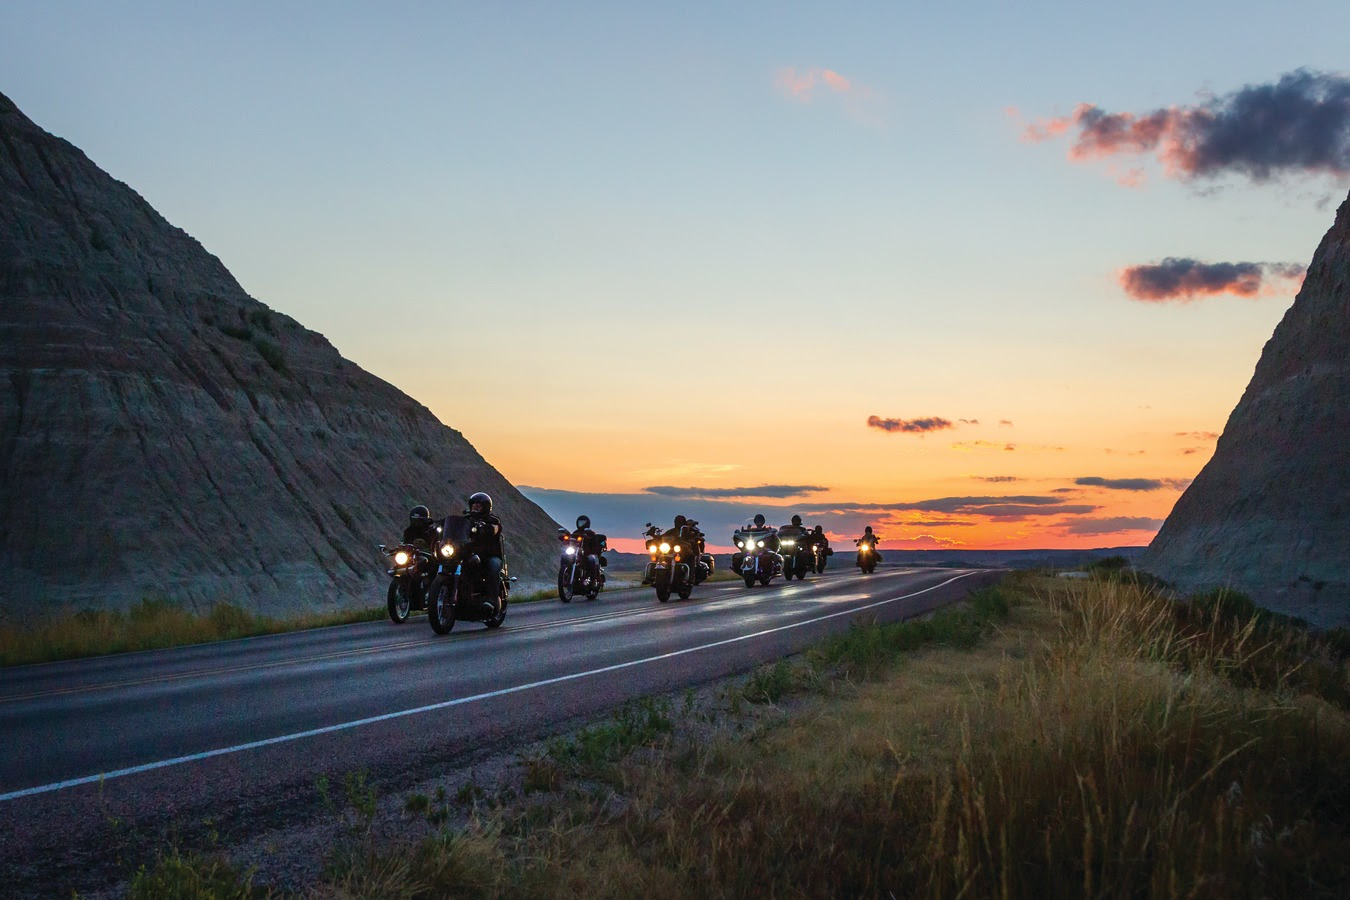 KURYAKYN HOSTS AN 'XKURSION TO THE BADLANDS'